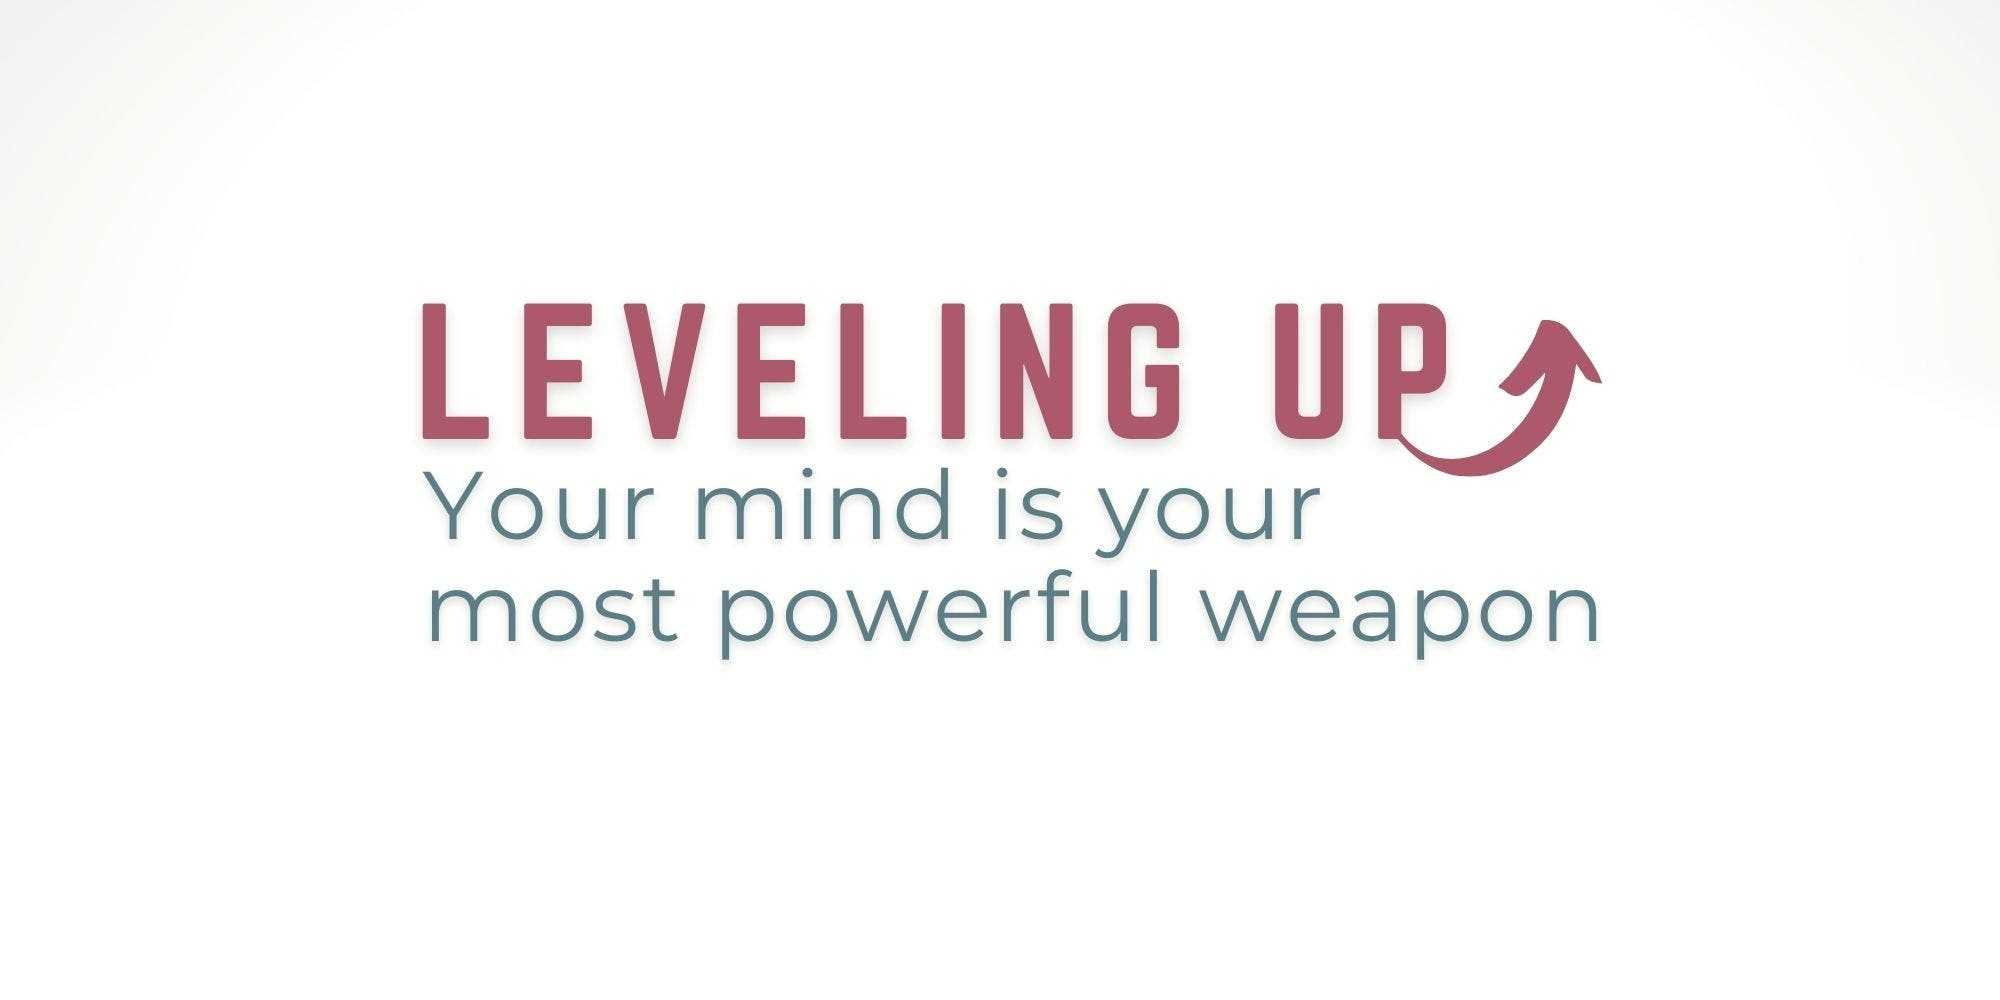 Leveling Up - Your Mind is Your Most Powerful Weapon